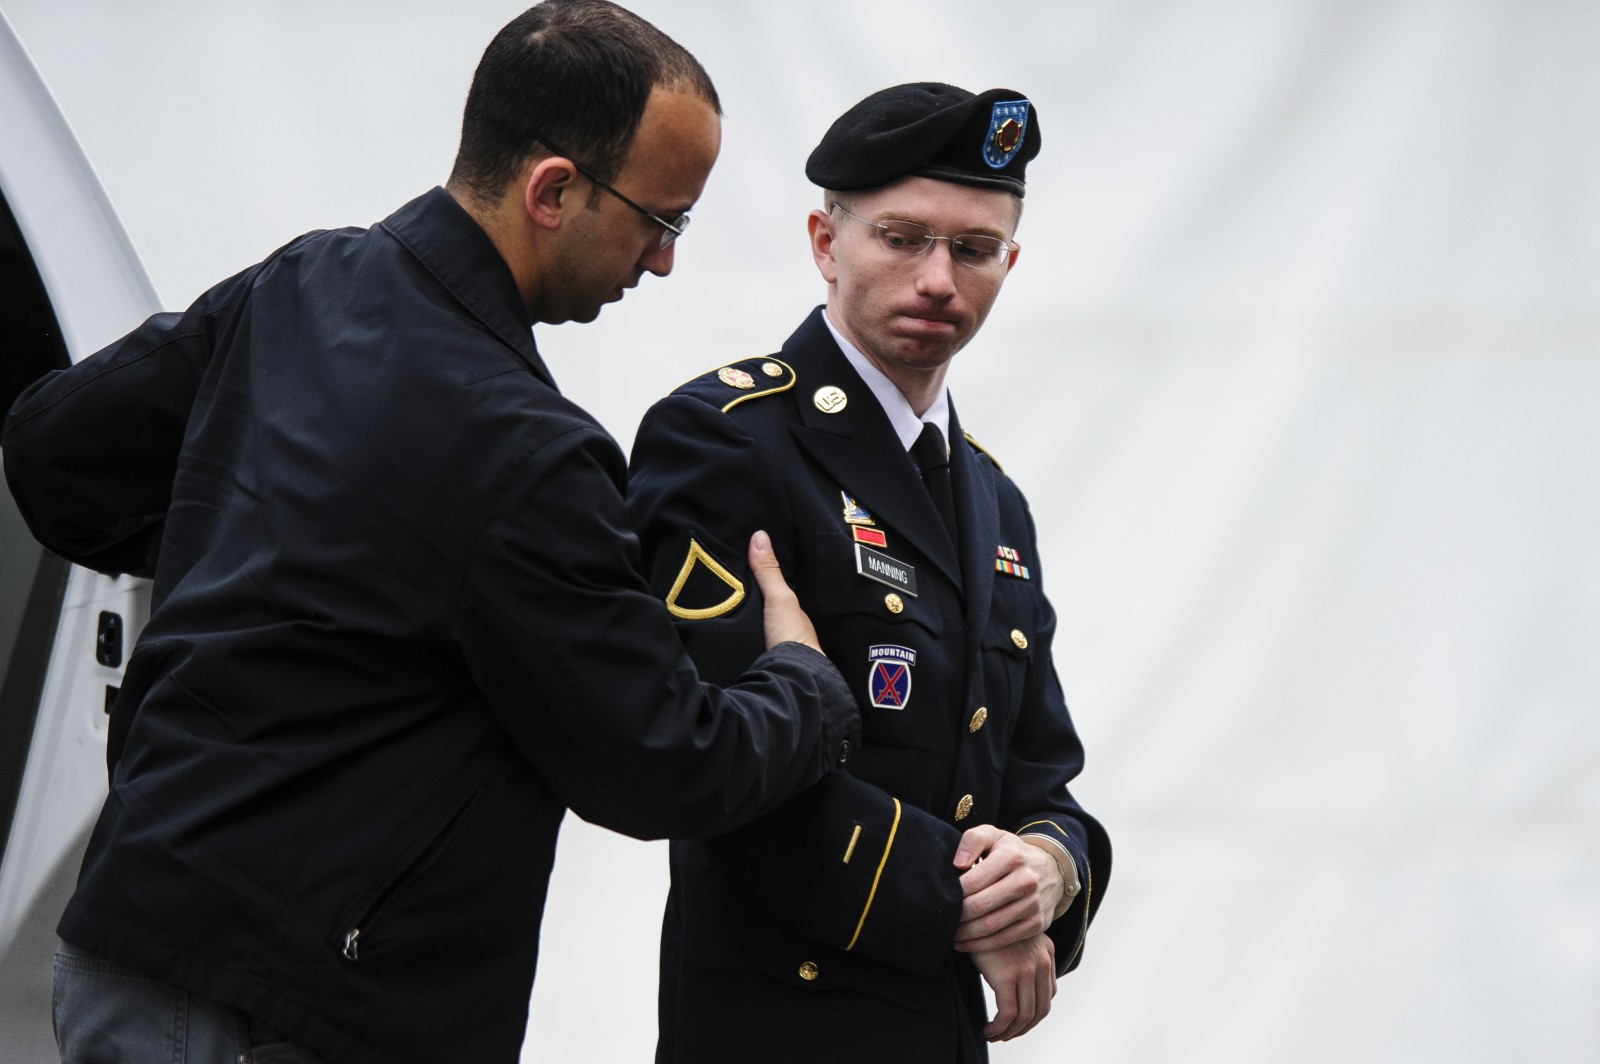 US Army Private Bradley Manning, charged with leaking classified documents to the WikiLeaks website, arrives at the courtroom for the fourth day of his court-martial at Fort Meade, Maryland, USA, 10 June 2013.